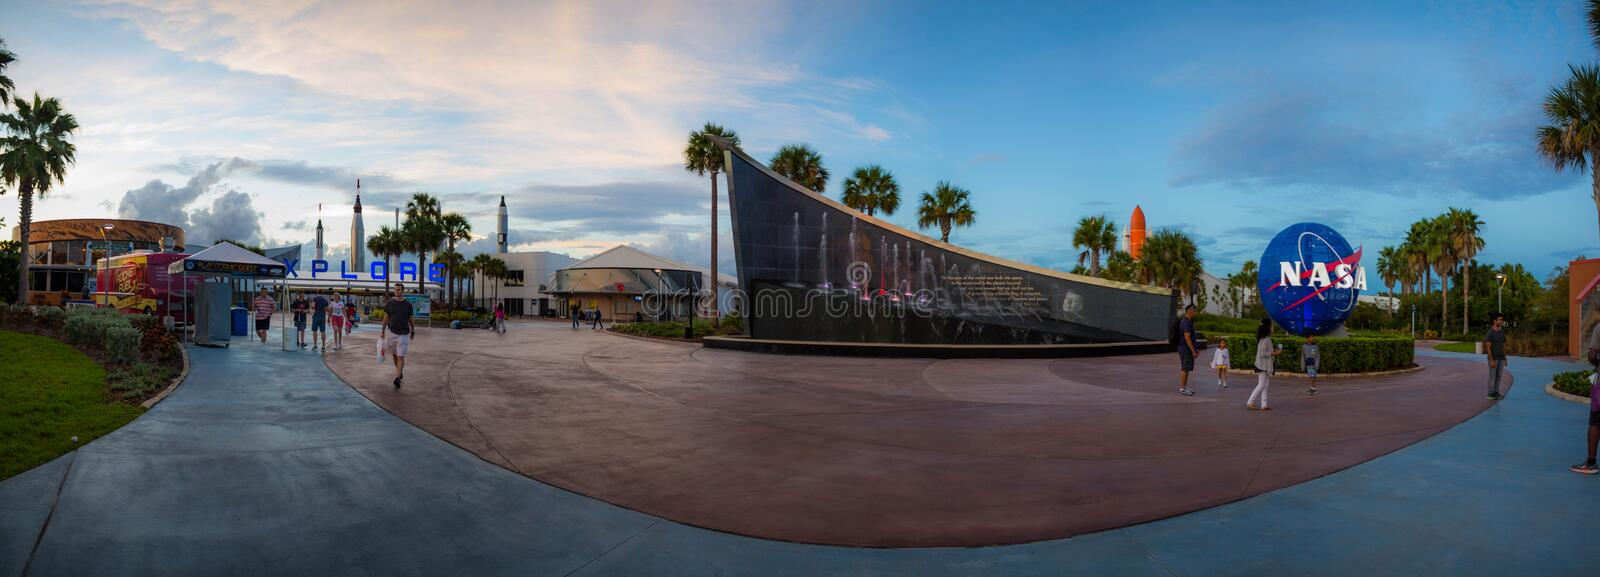 Kennedy Space Center Entrance Panorama royalty free stock images